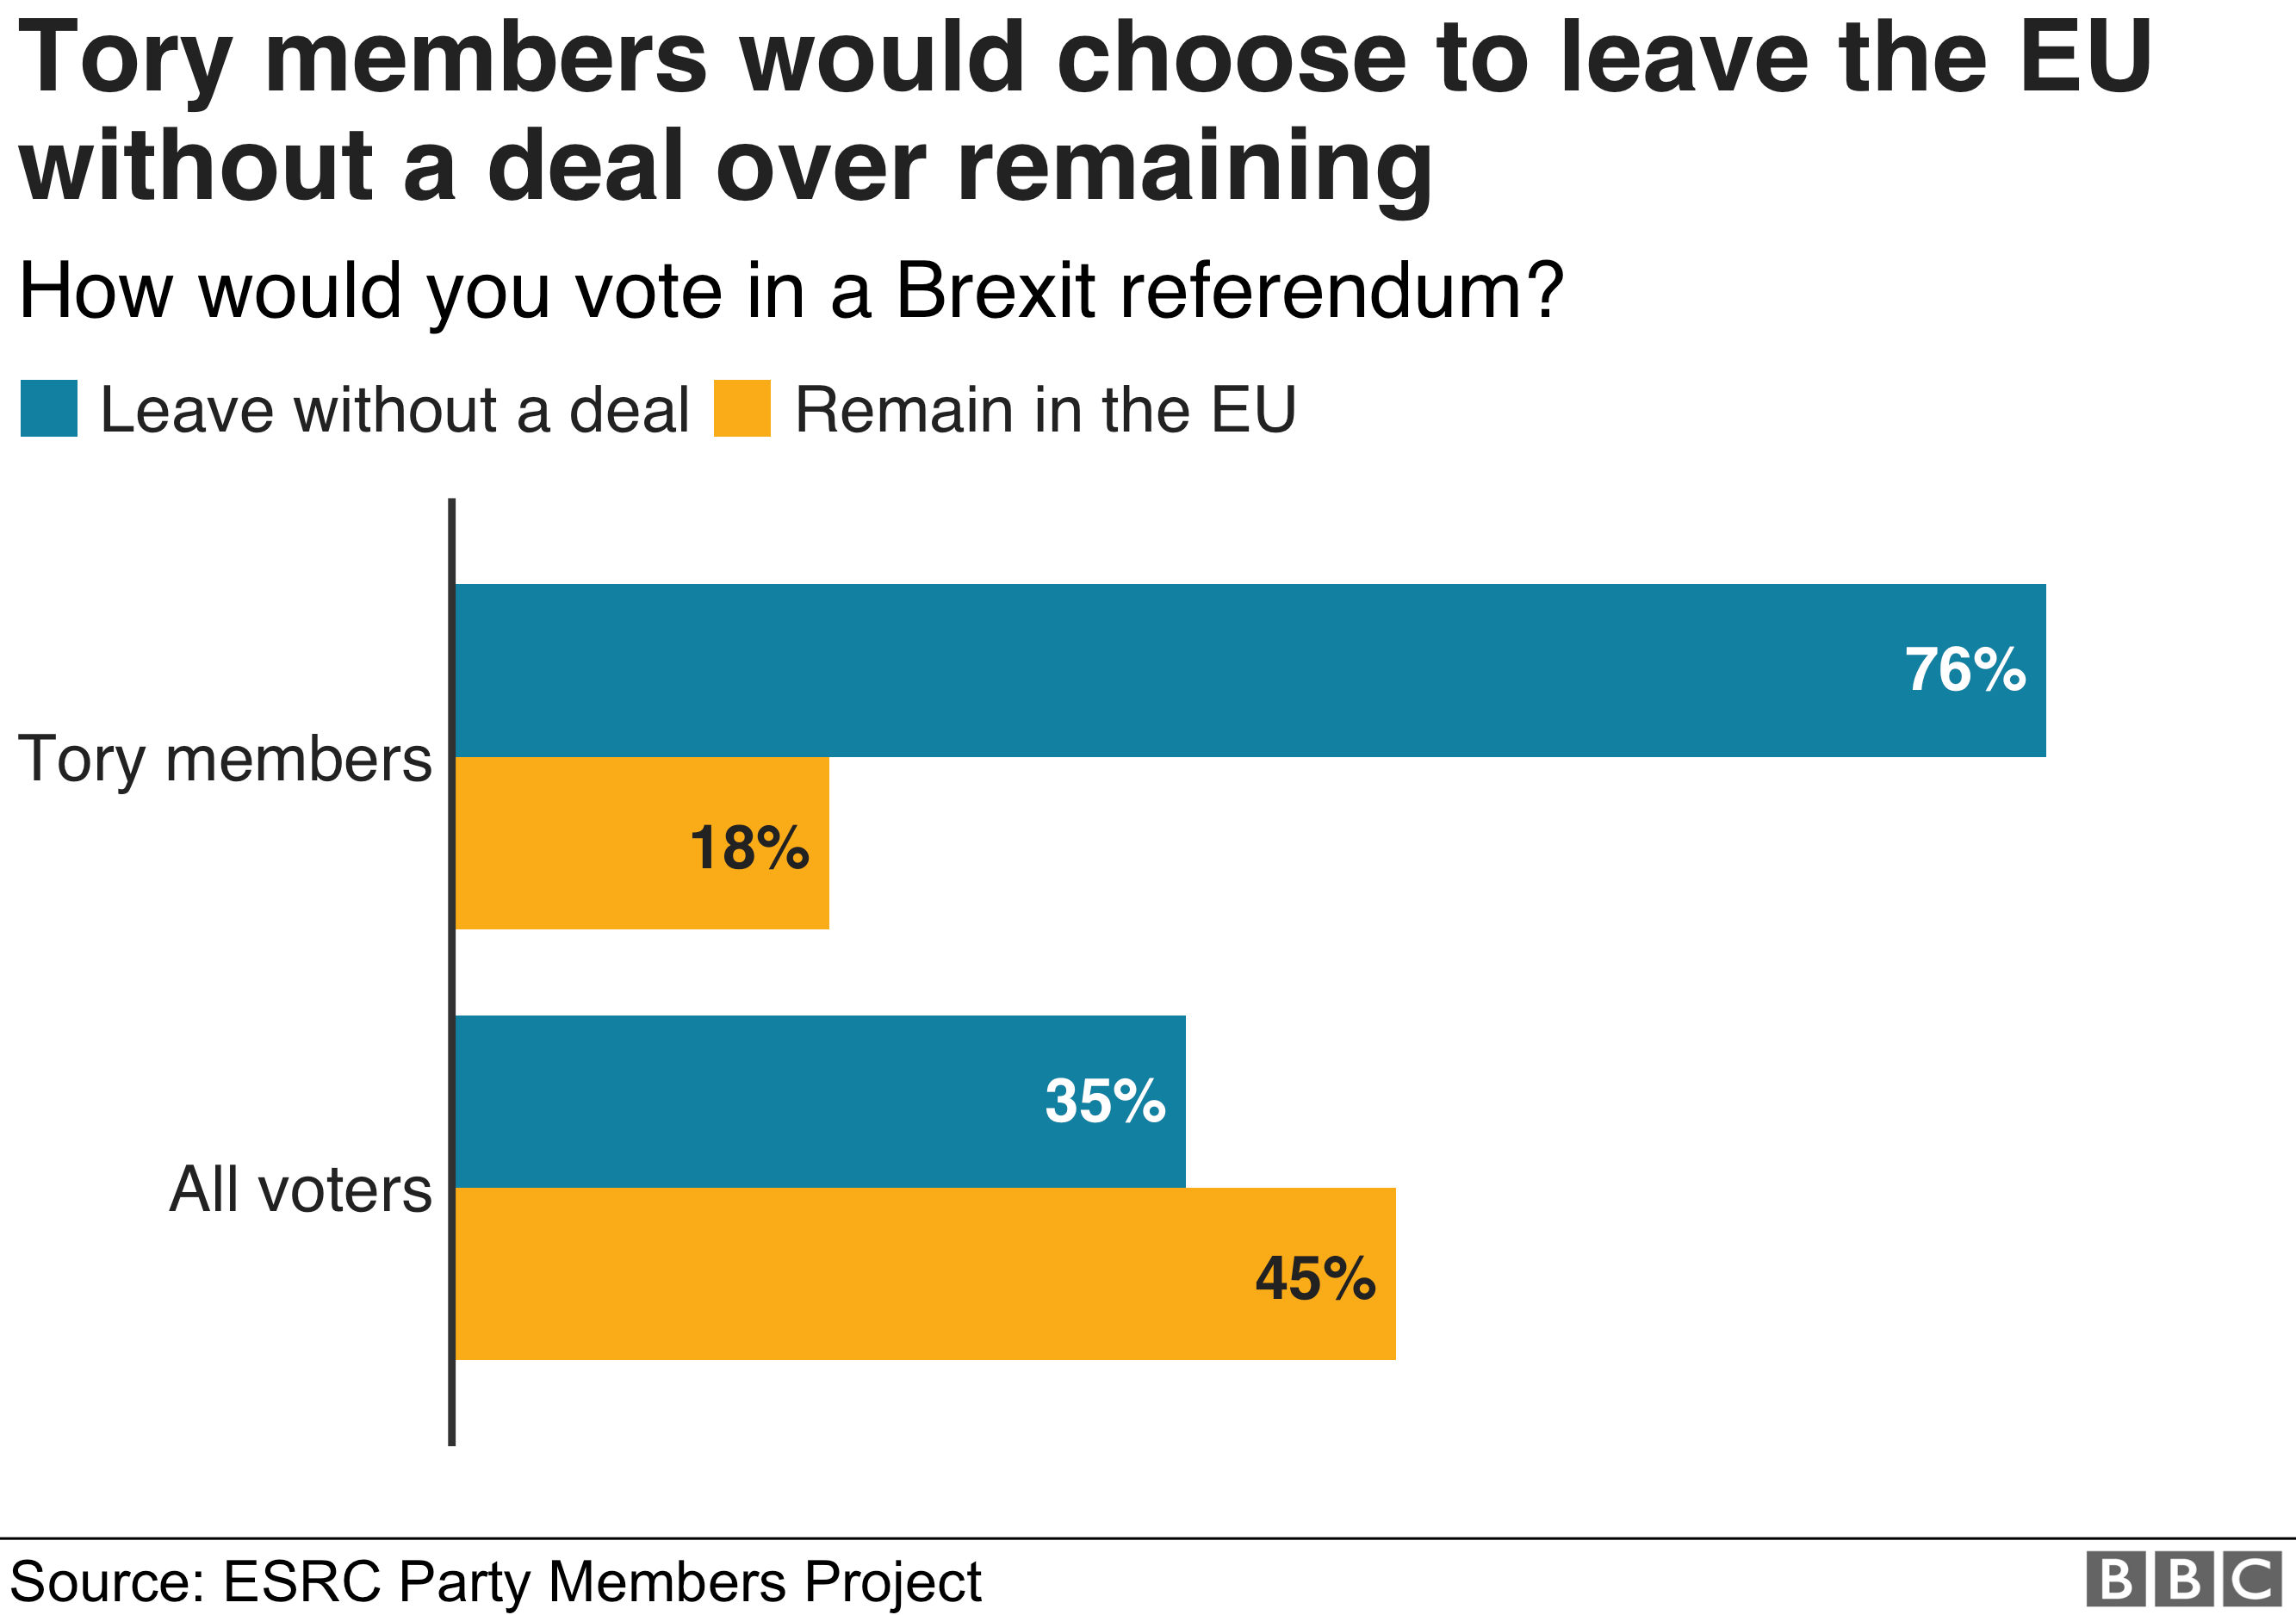 Bar chart showing a big majority of Tory members want to leave the EU with no deal rather than remain